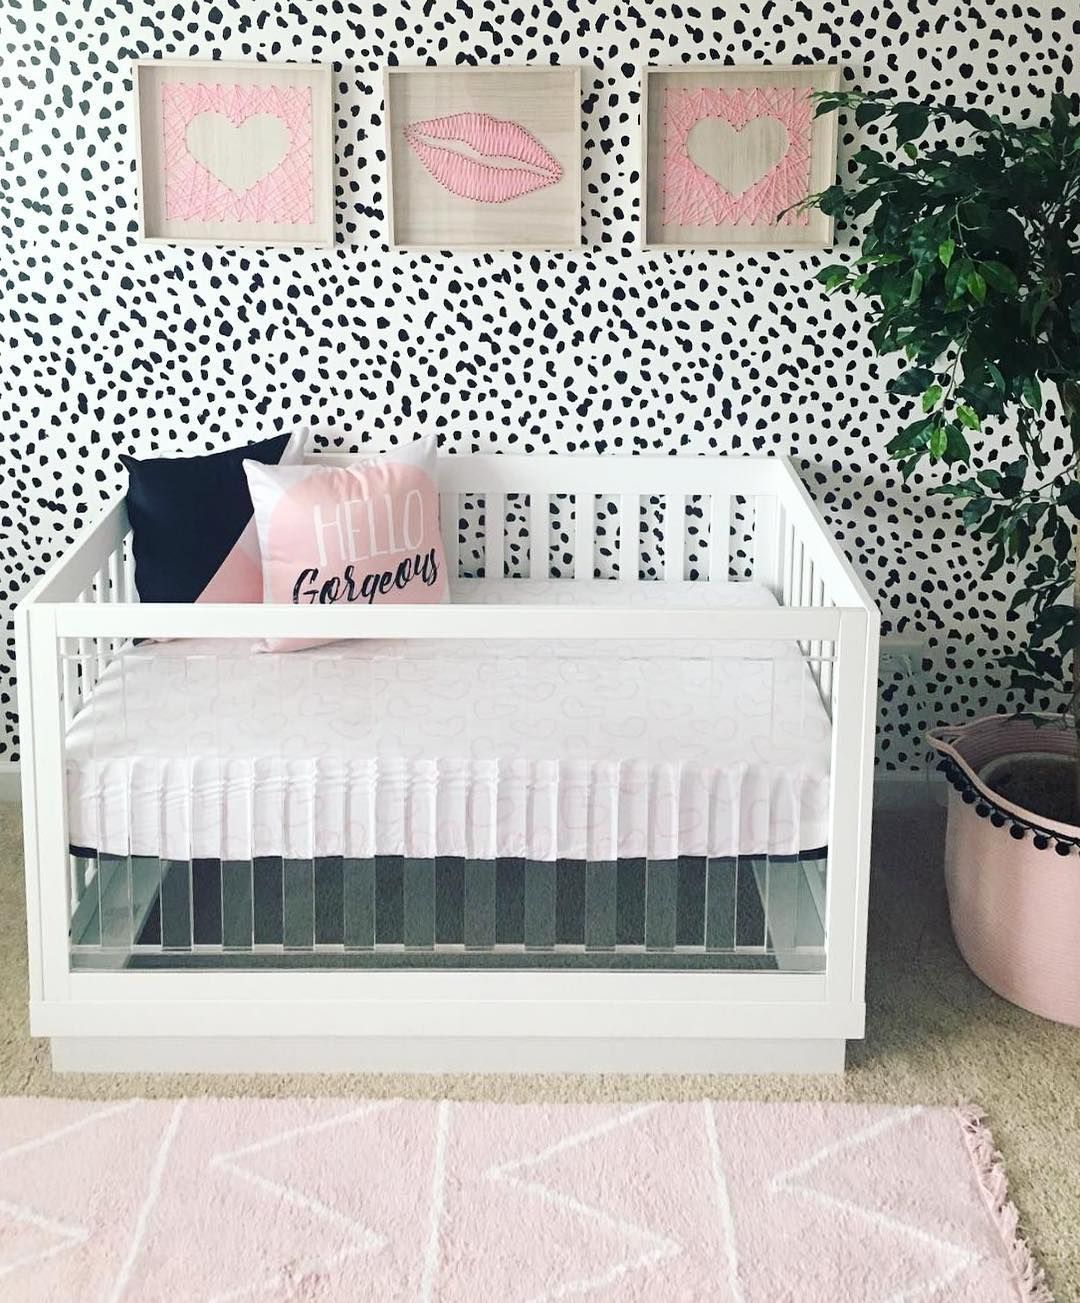 Babyletto On Instagram Can We Live Here After The Babe Grows Up Cause Babyletto Harlow Acry Baby Boy Room Decor Baby Room Colors Baby Boy Nursery Decor